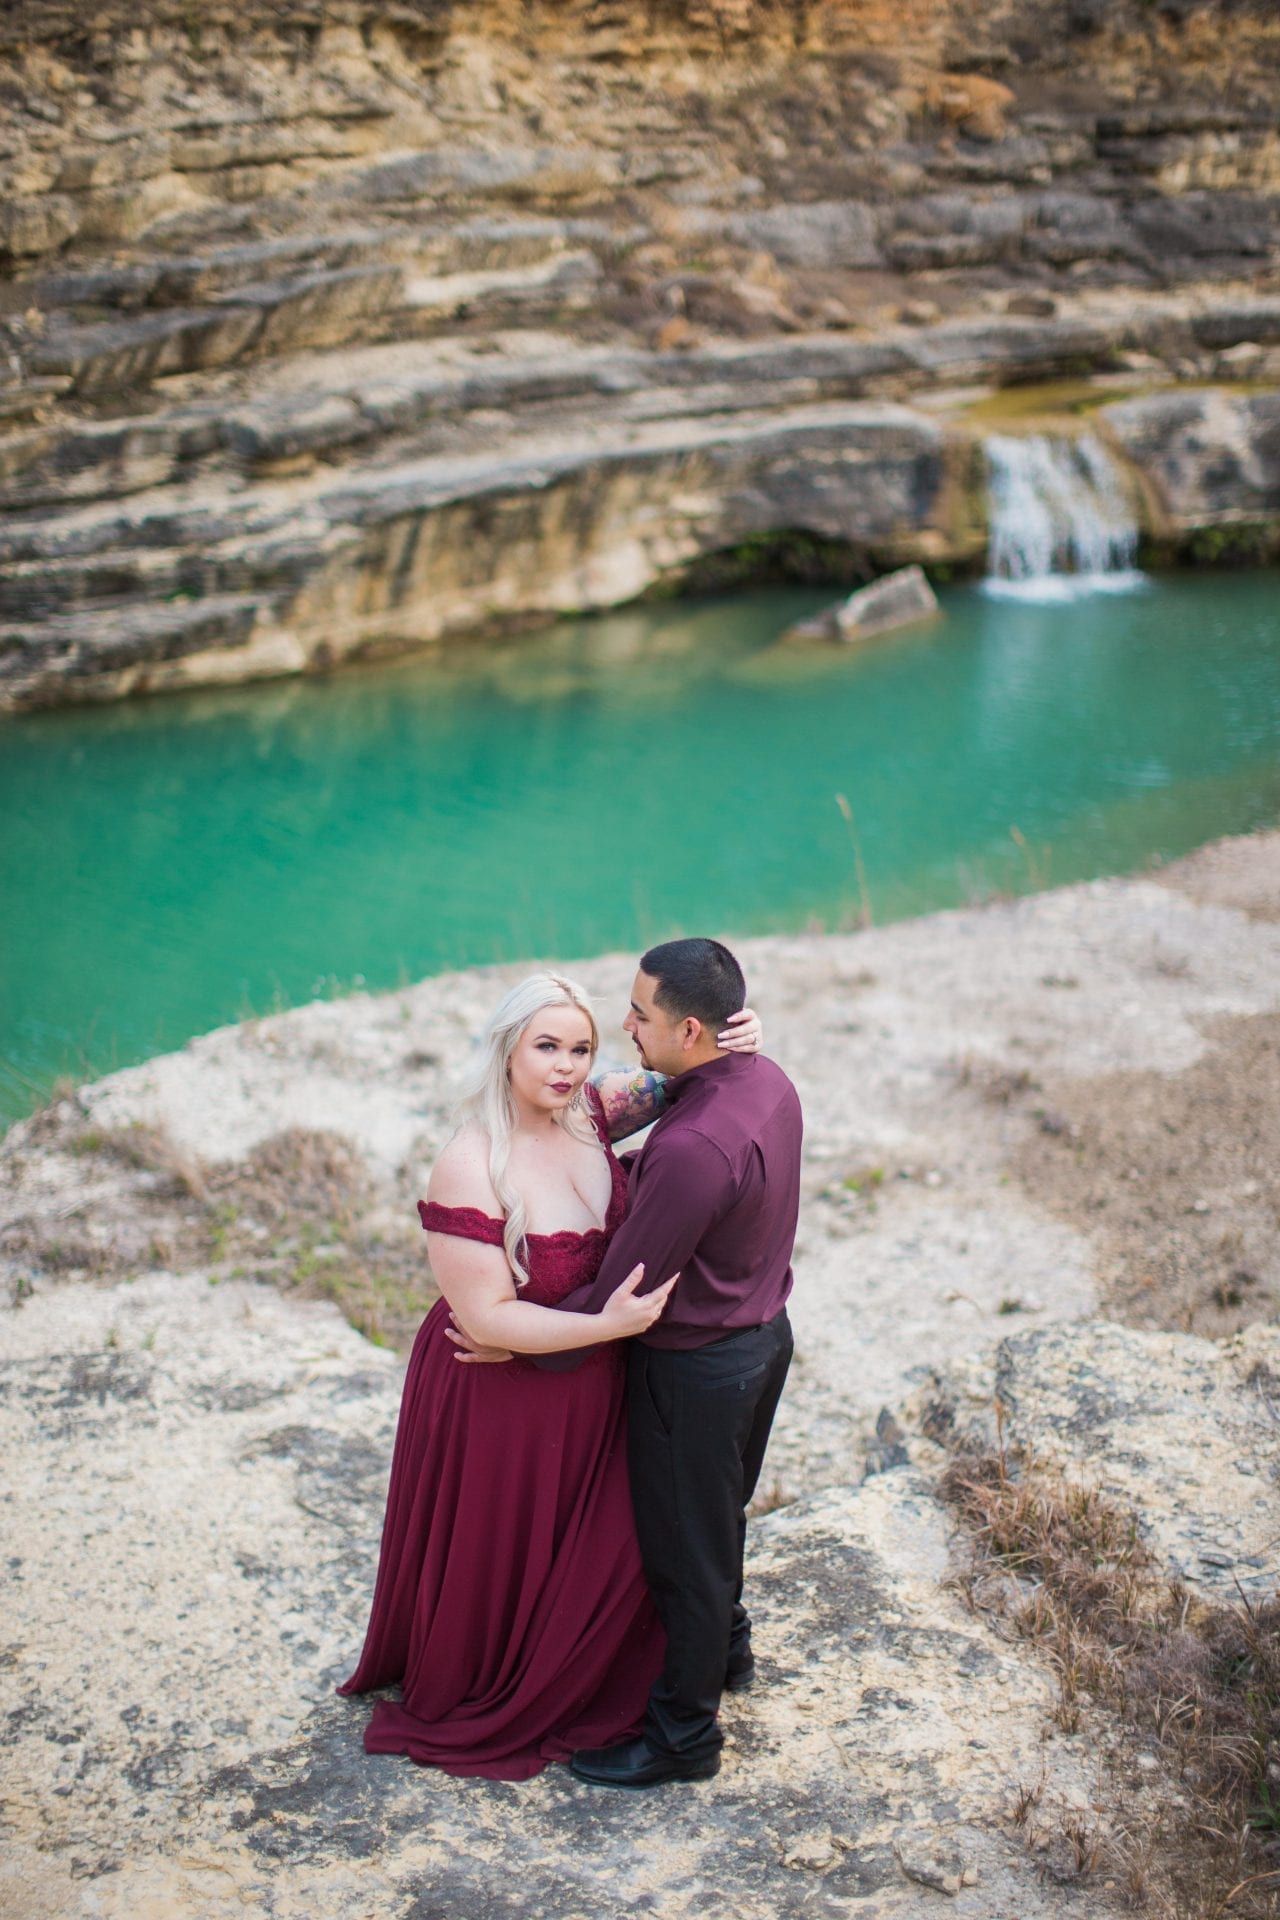 Katie and Gabe engagement session Canyon Lake dam gorge on rocks looking up